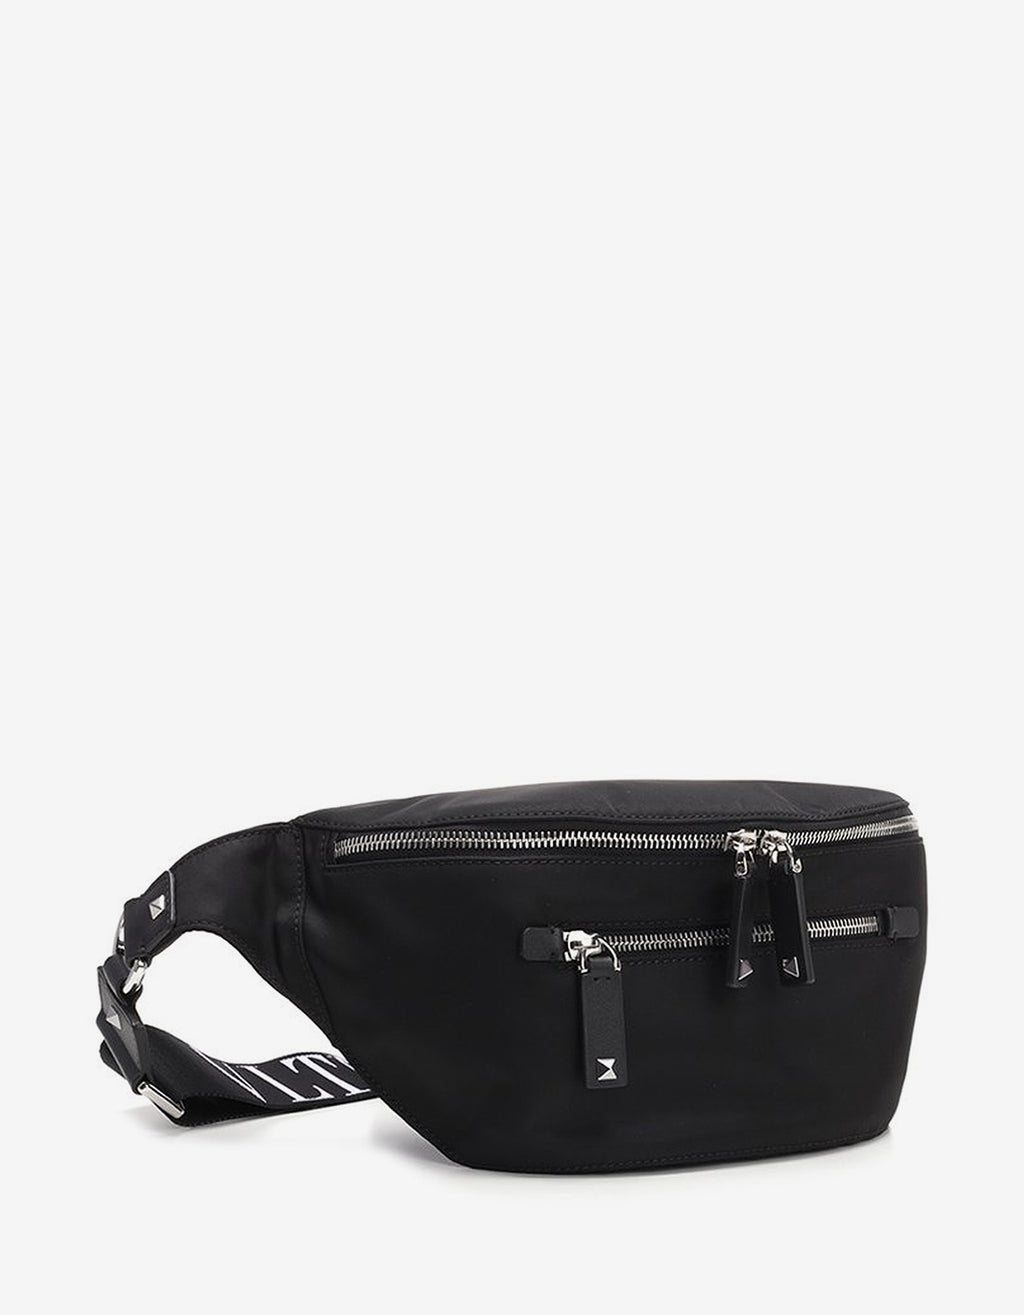 Black Nylon VLTN Waist Bag